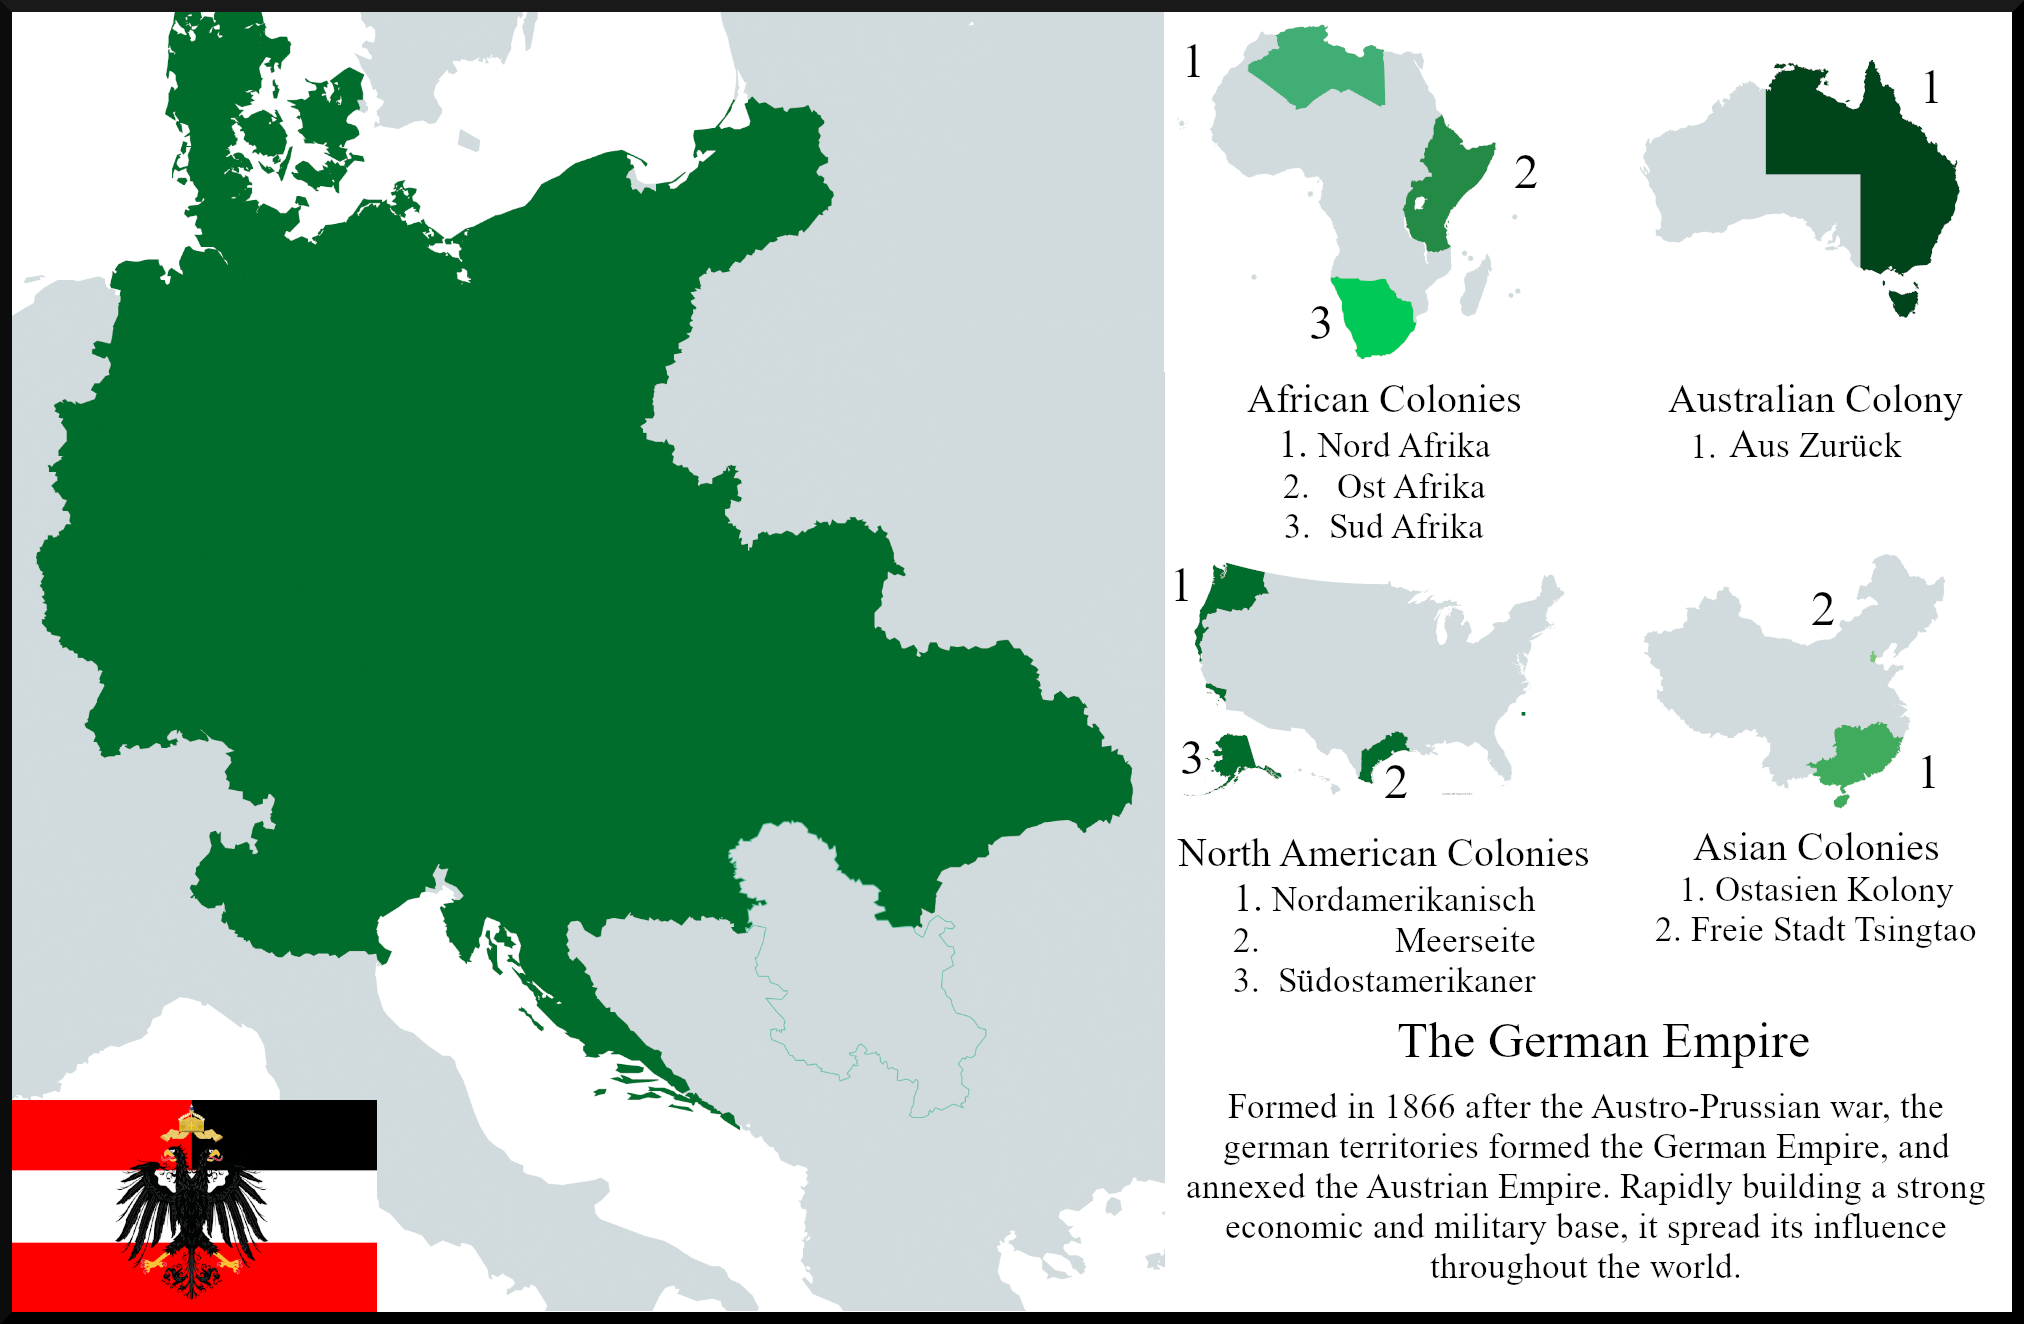 Pin By Quen Langston On Alternate Flags And Maps Cartography Map Germany Map Alternate History